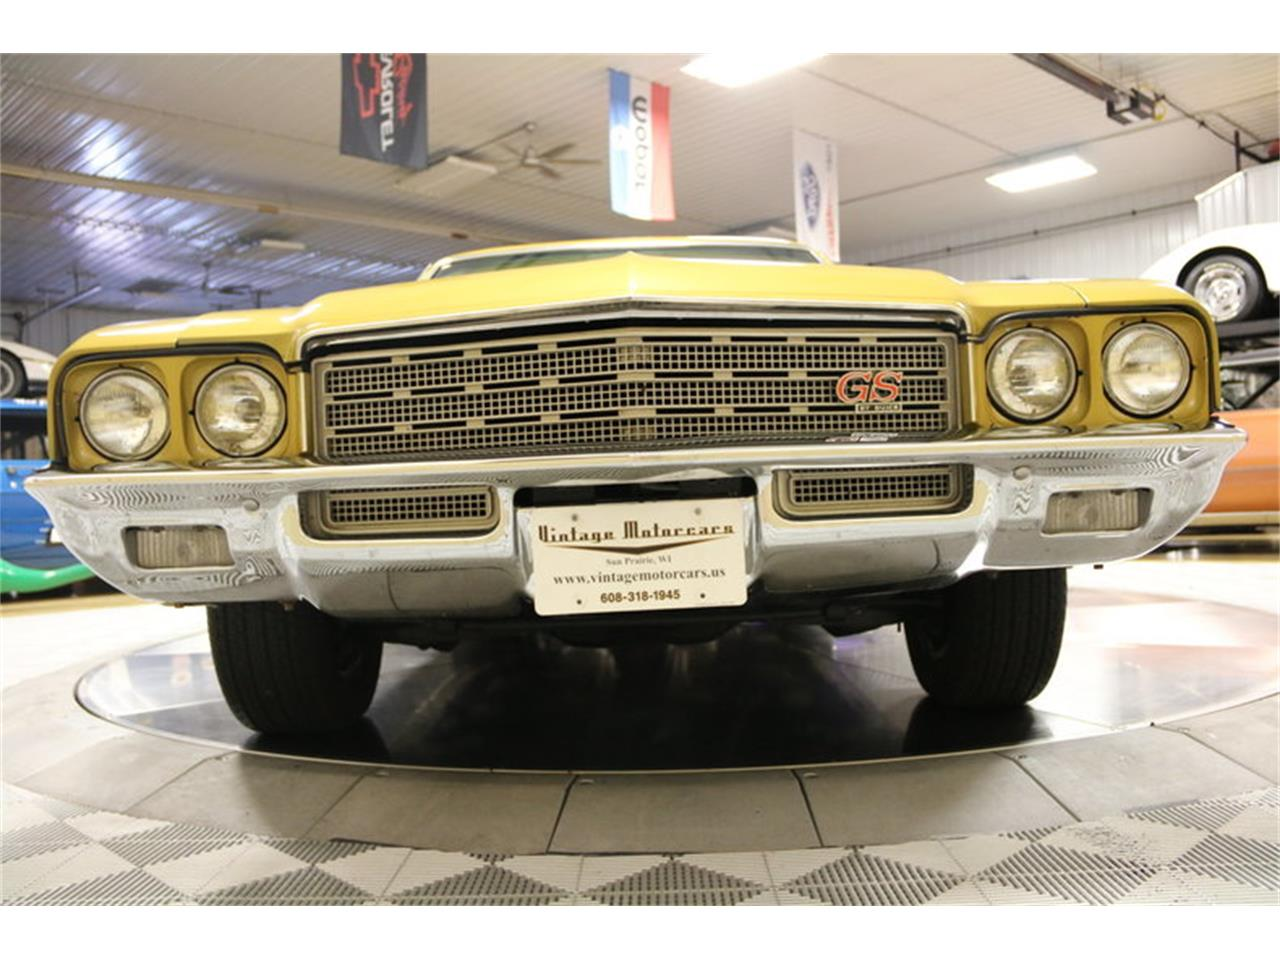 Large Picture of 1971 Buick Gran Sport Offered by Vintage Motorcars LLC - NQKL